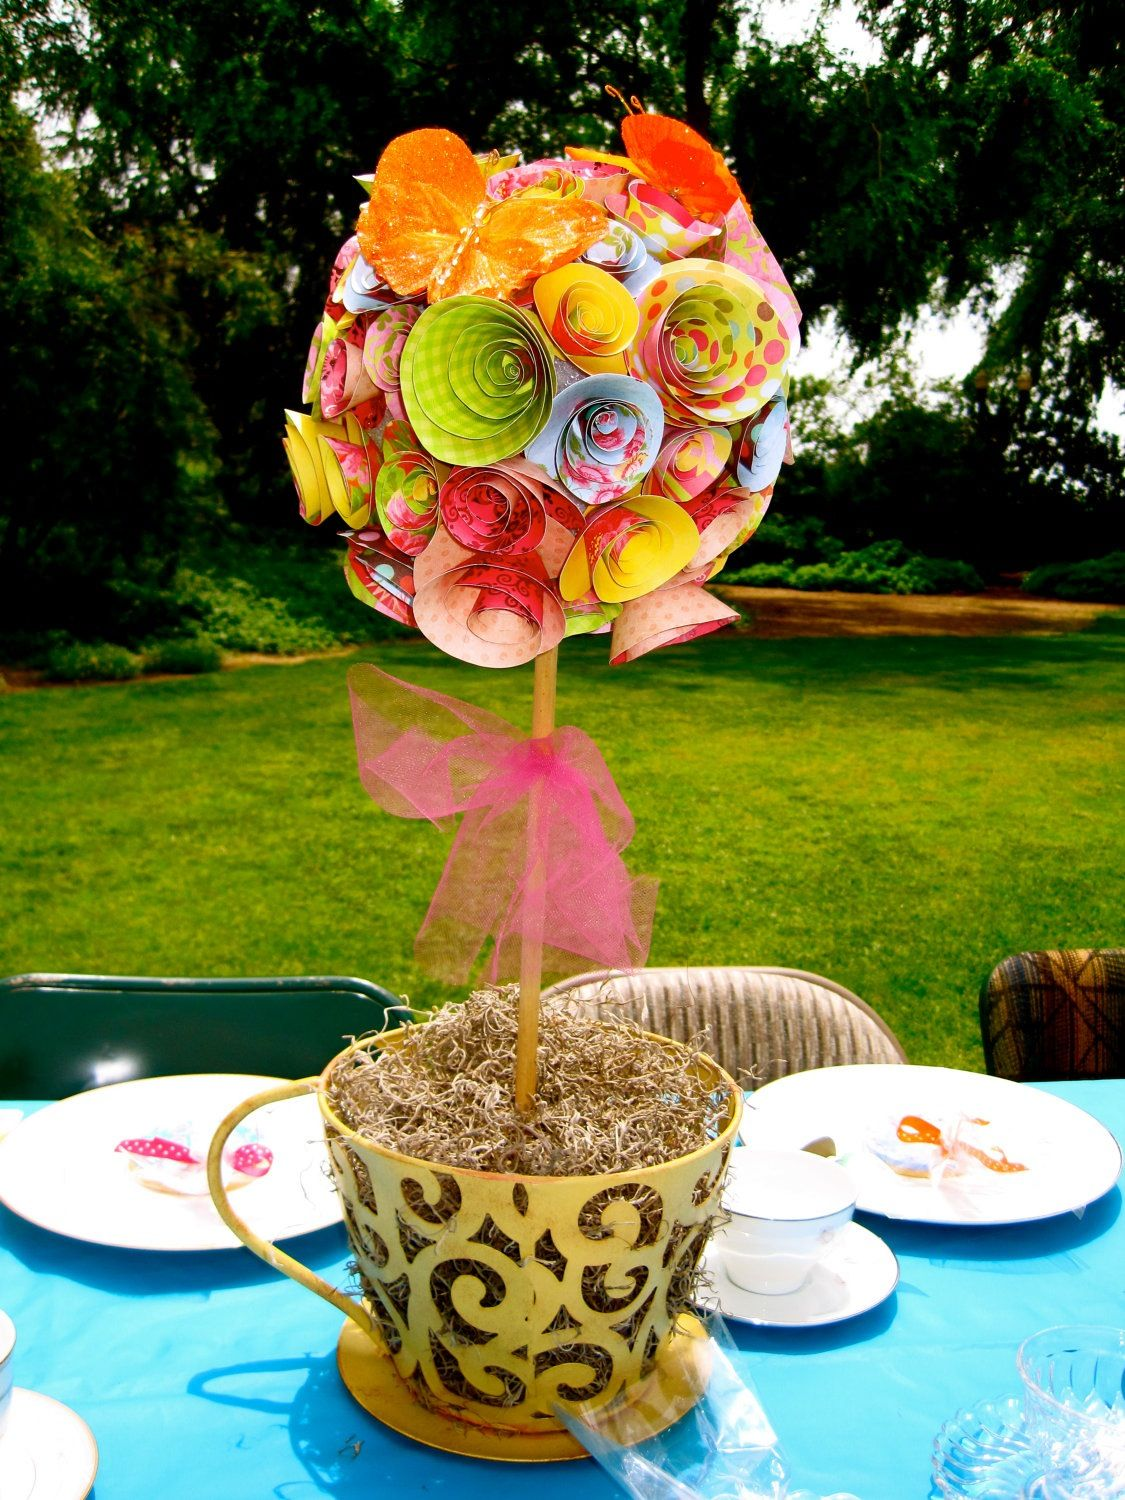 The Best Diy Alice In Wonderland Tea Party Ideas On A Shoestring